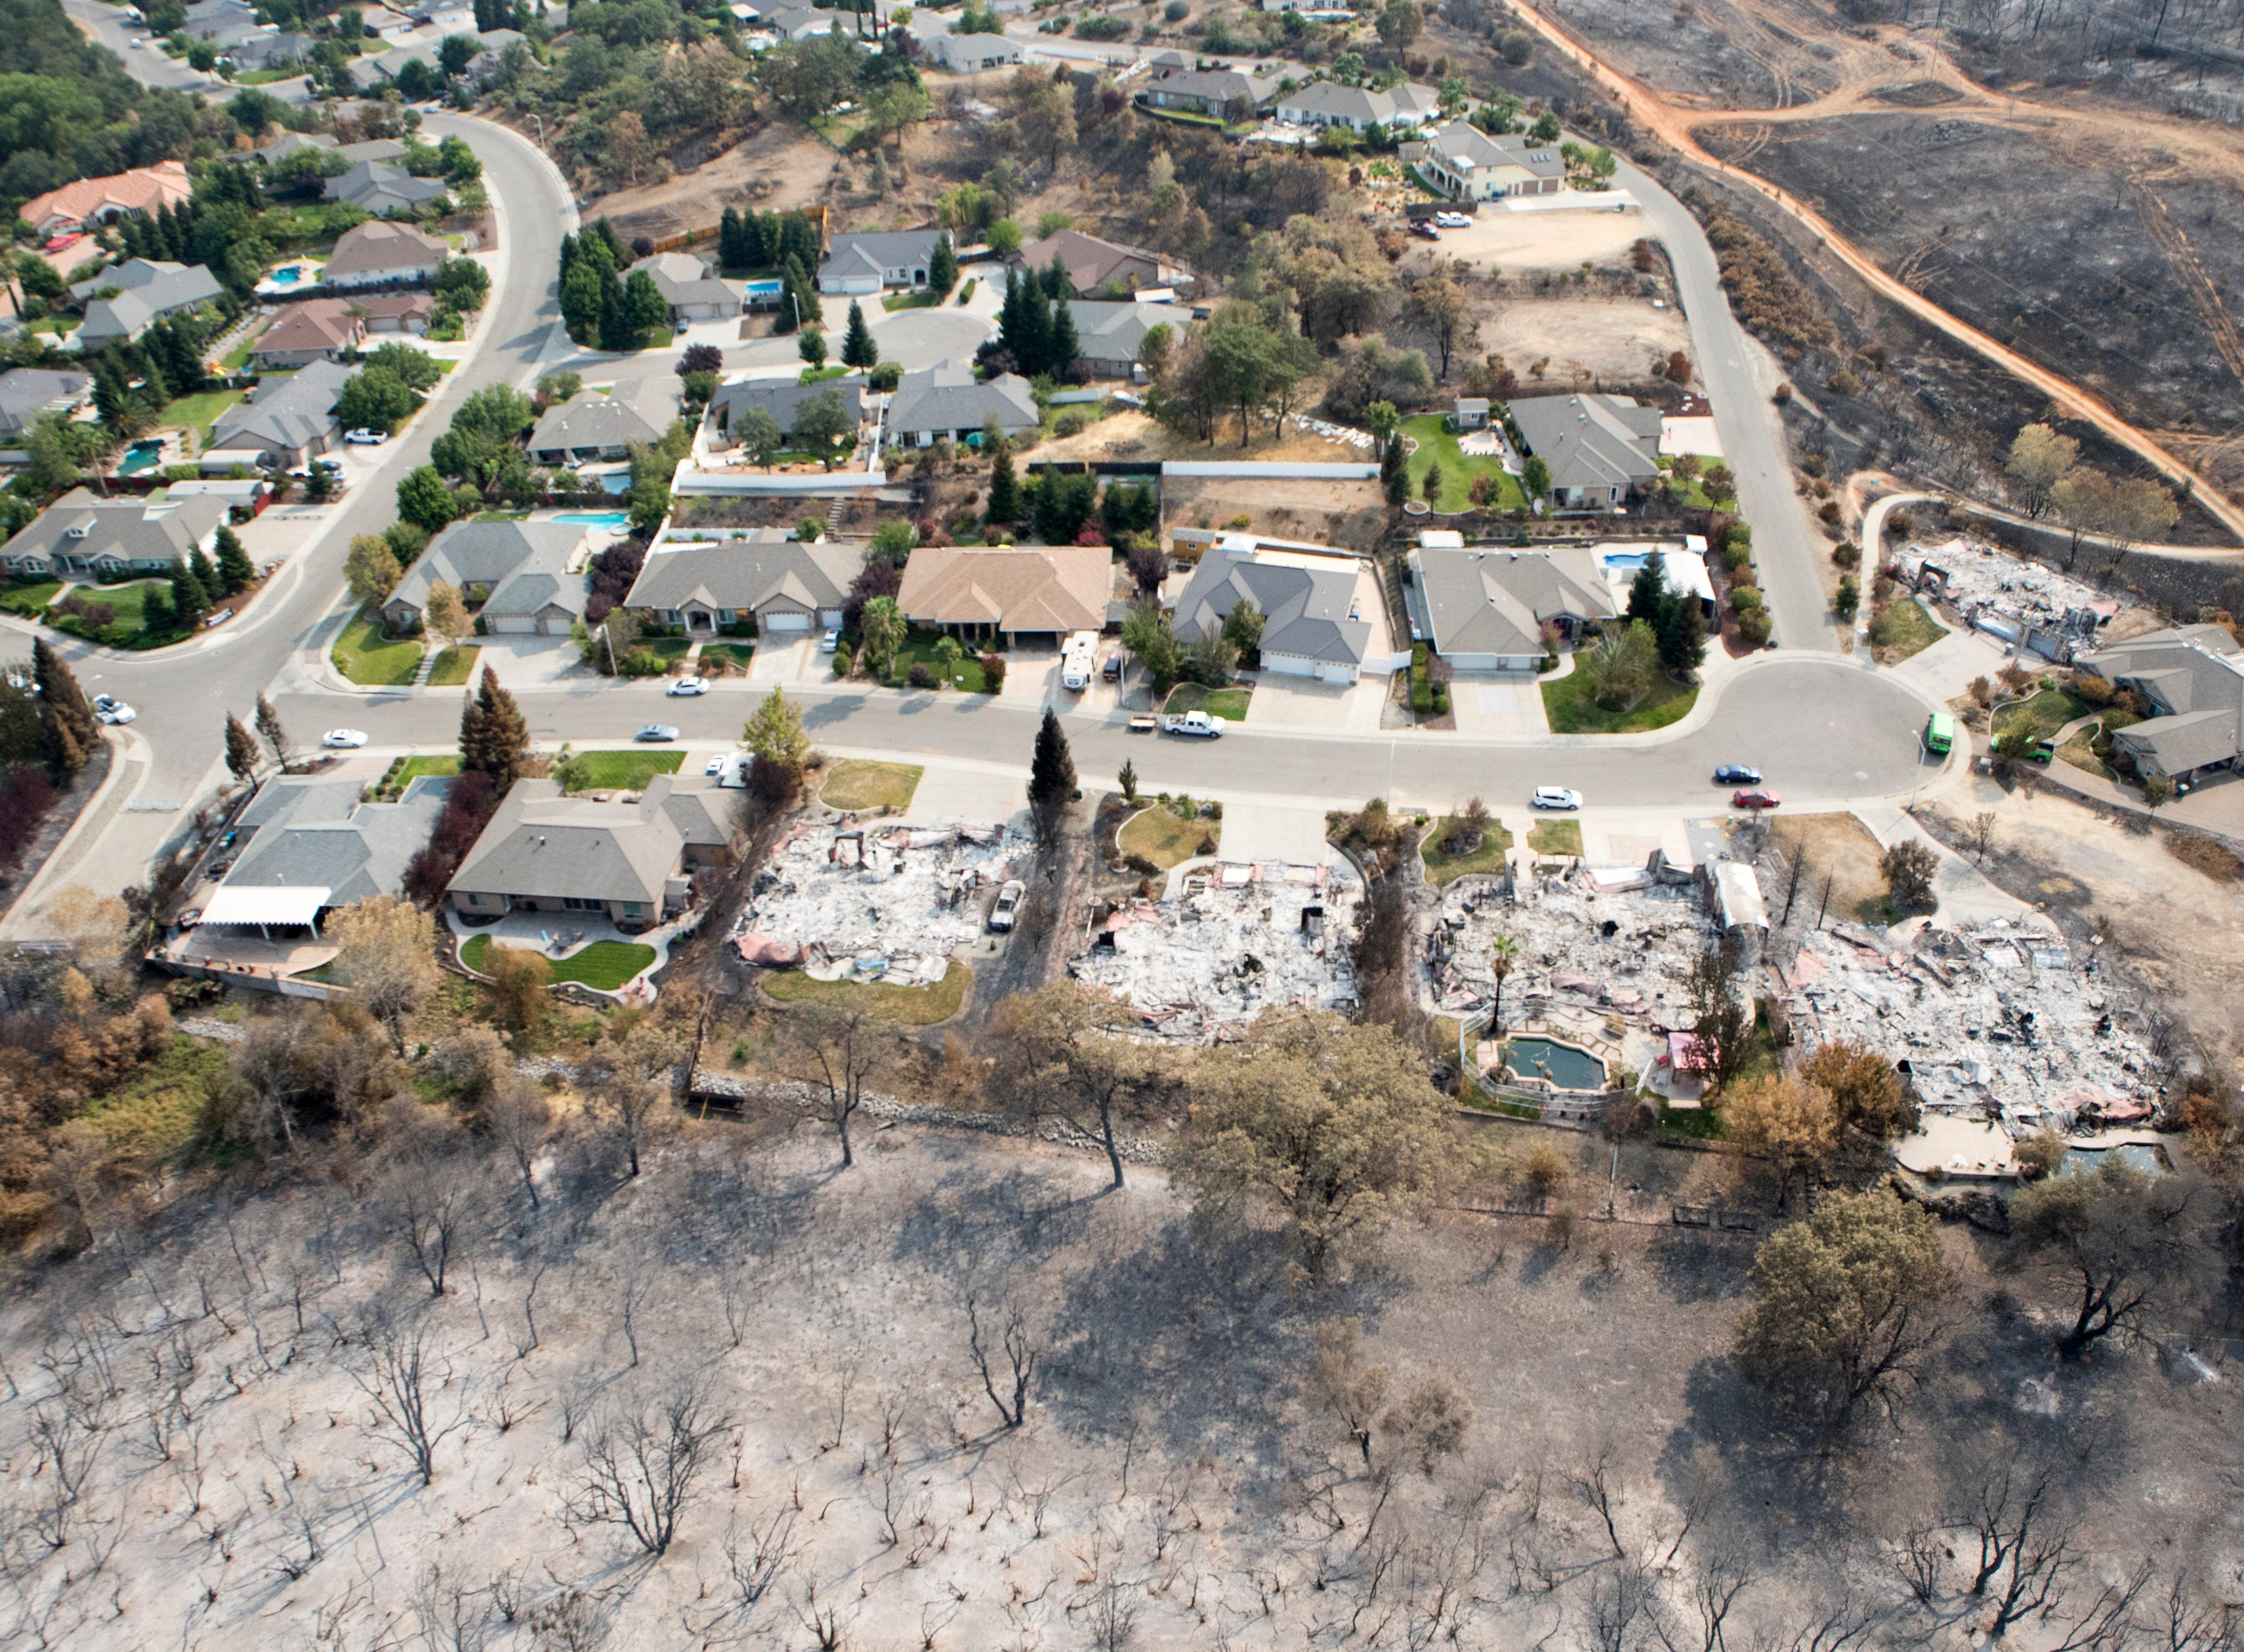 The western edge of the Mary Lake subdivision shows the Carr Fire's destruction.